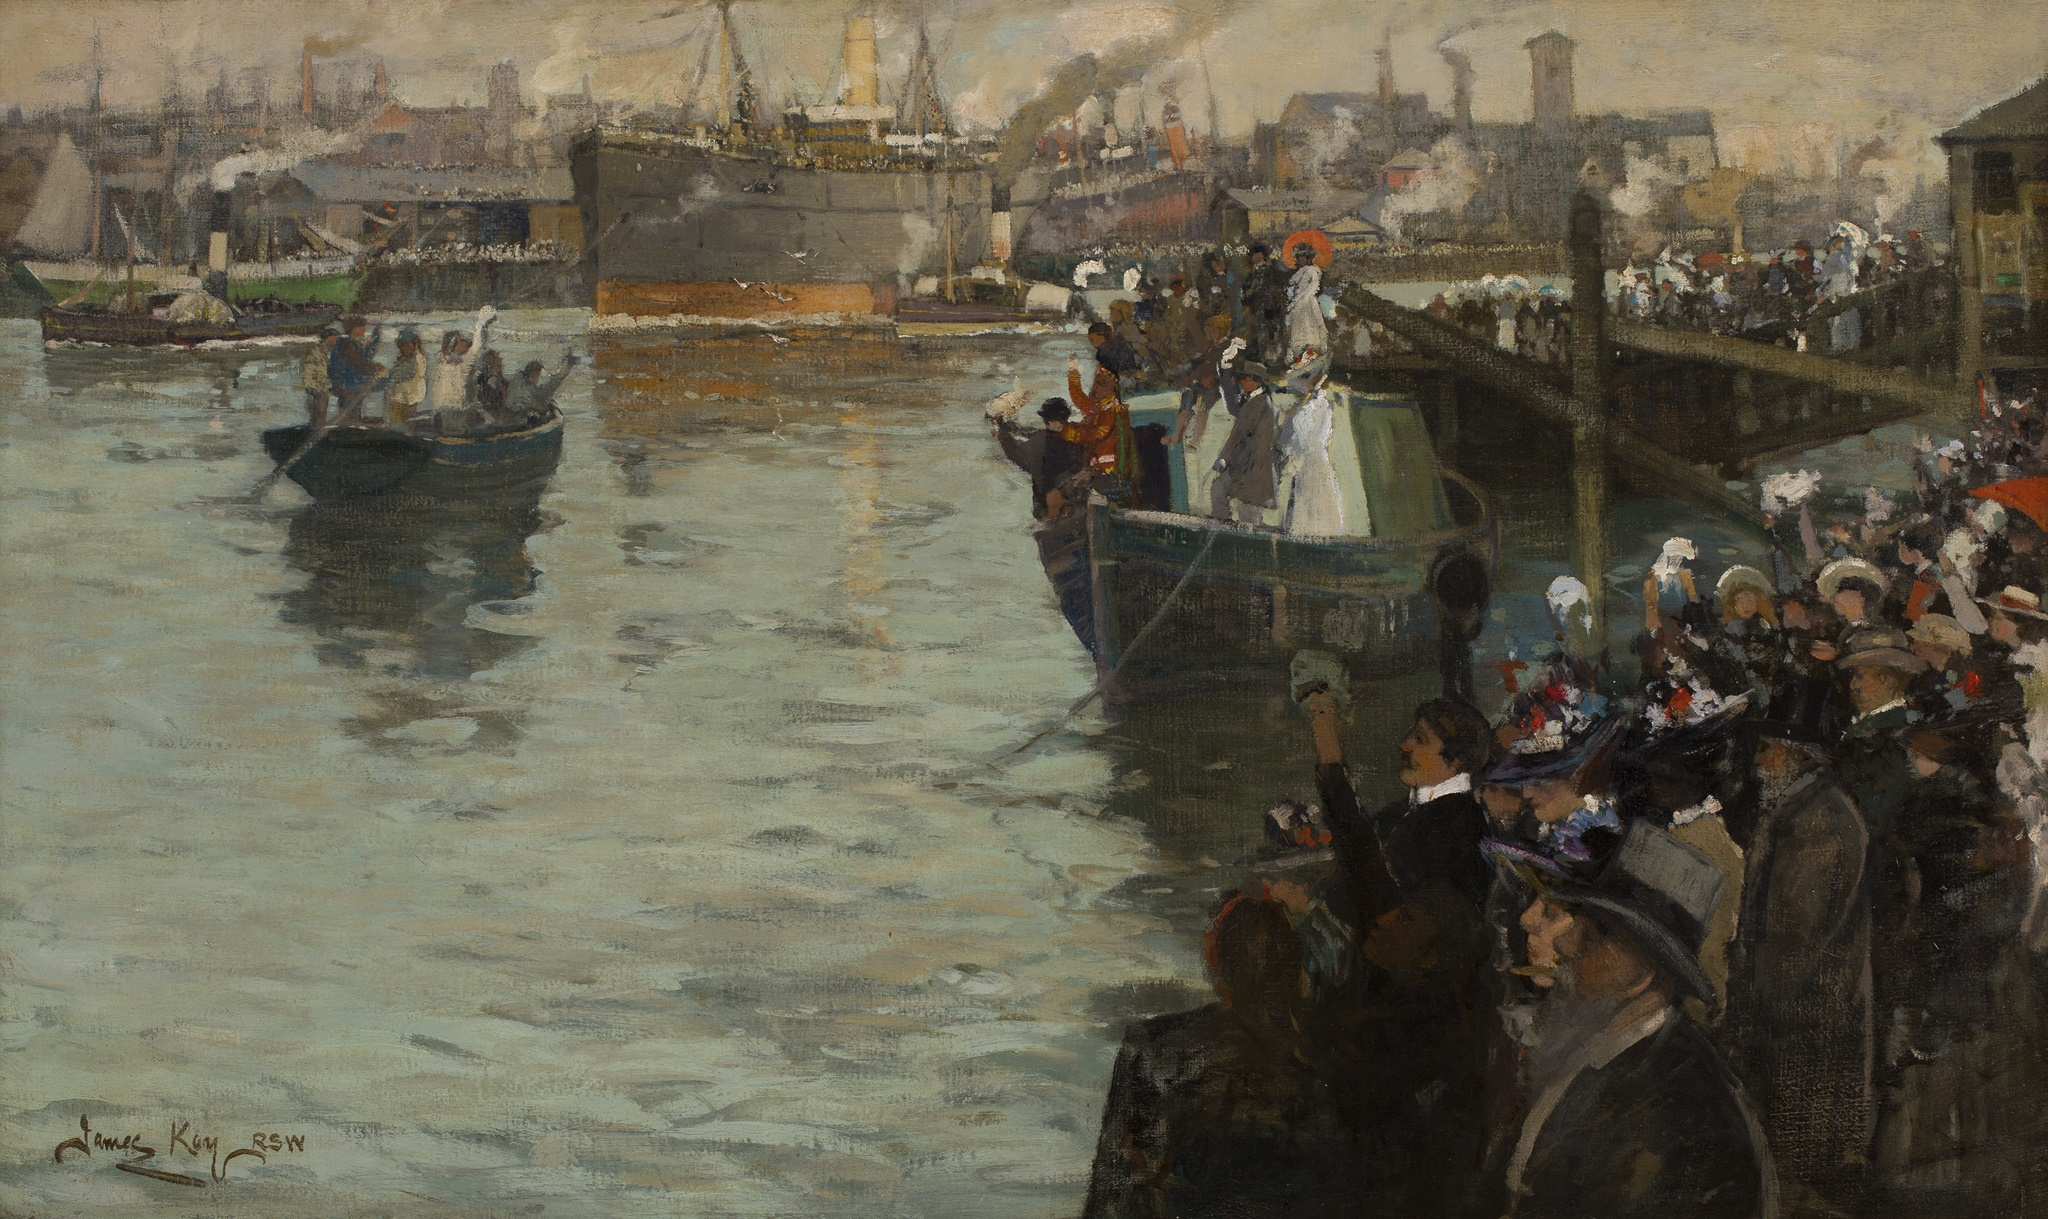 Lot 21   JAMES KAY R.S.A., R.S.W. (SCOTTISH 1858-1942)  DEPARTURE FROM THE CLYDE - BOUND FOR THE FRONT  Sold for £20,000